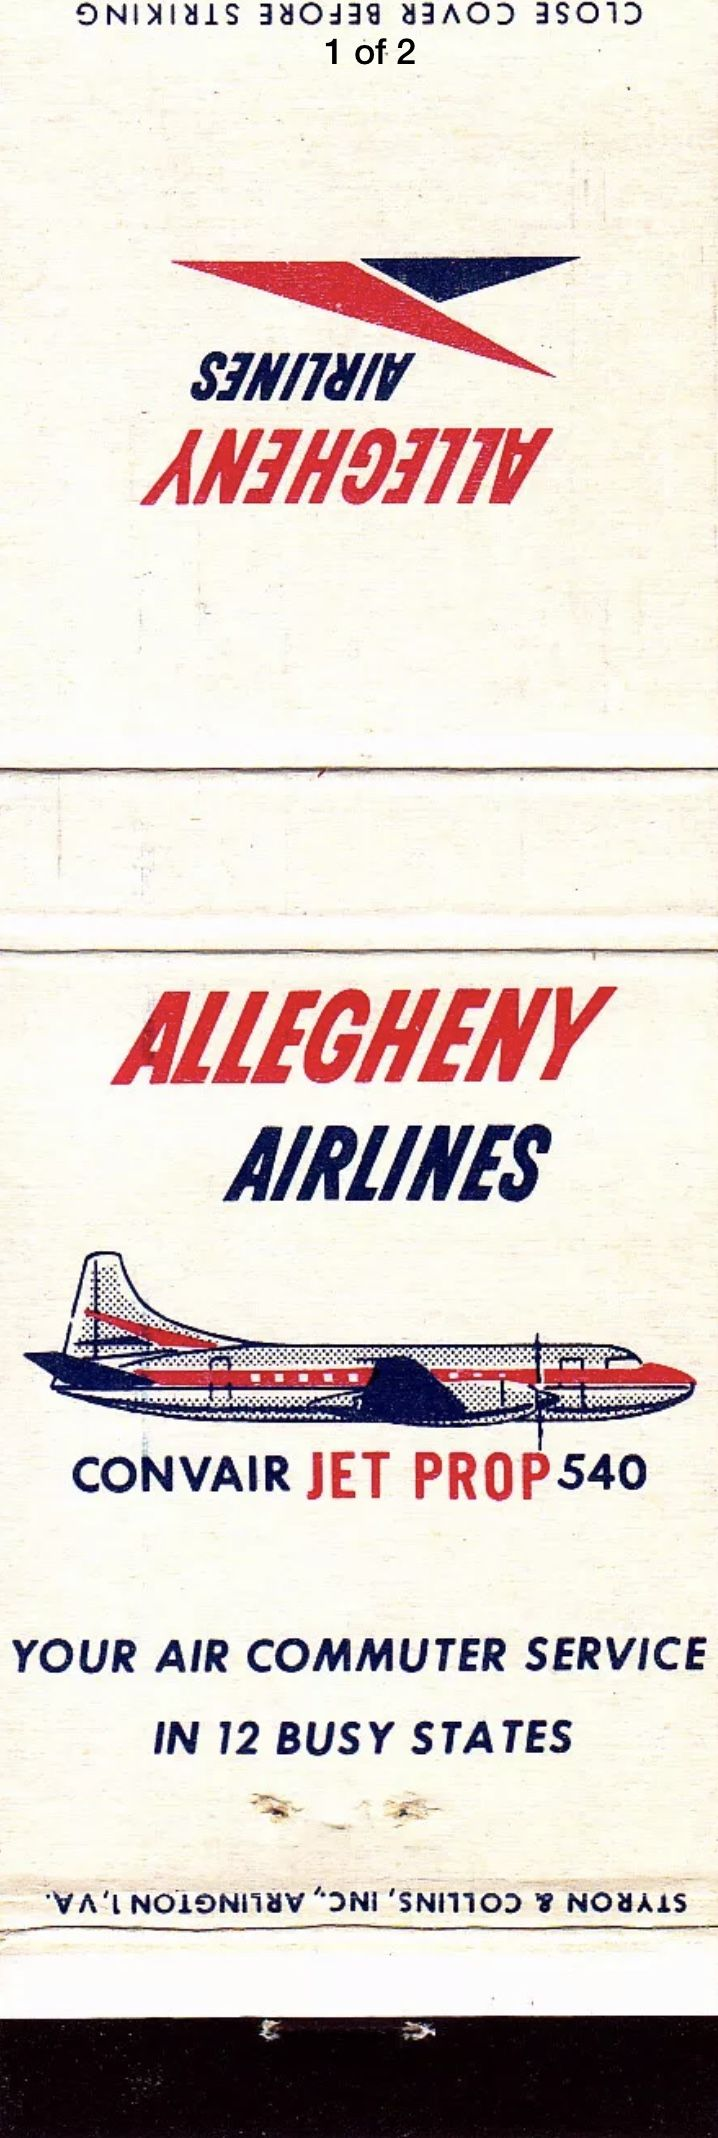 Pin by Brian Kravat on Vintage Airline Matchbooks